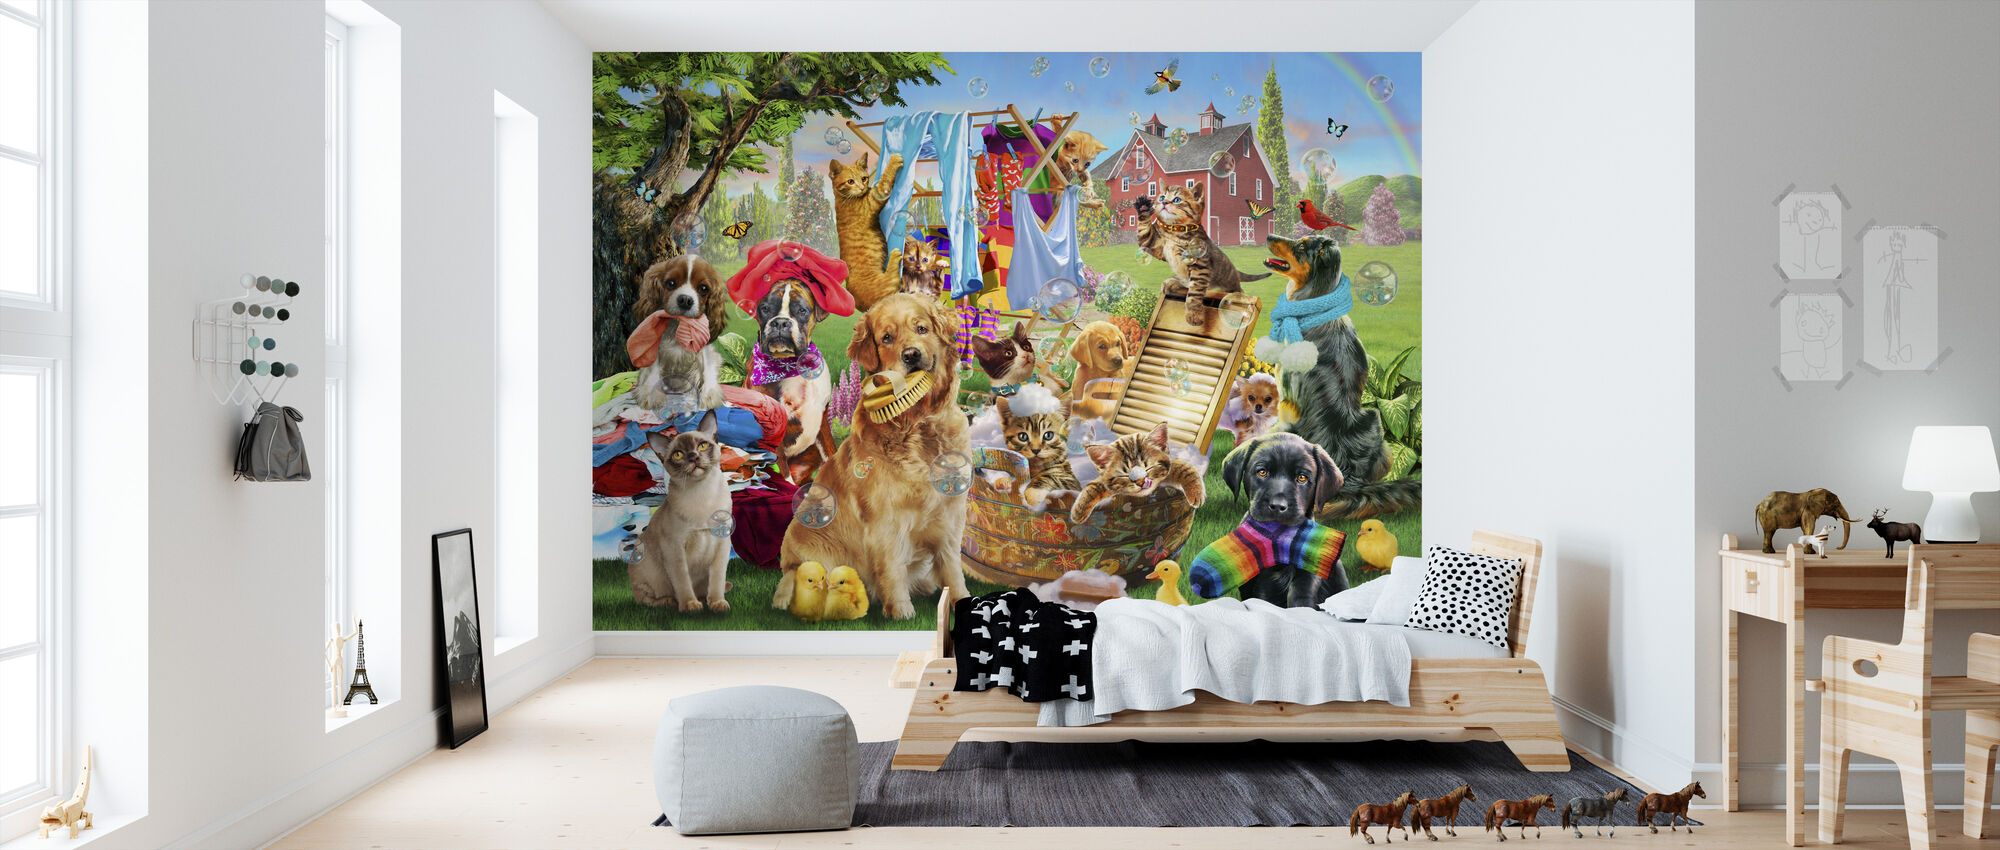 Pets On Wash Day - Wallpaper - Kids Room